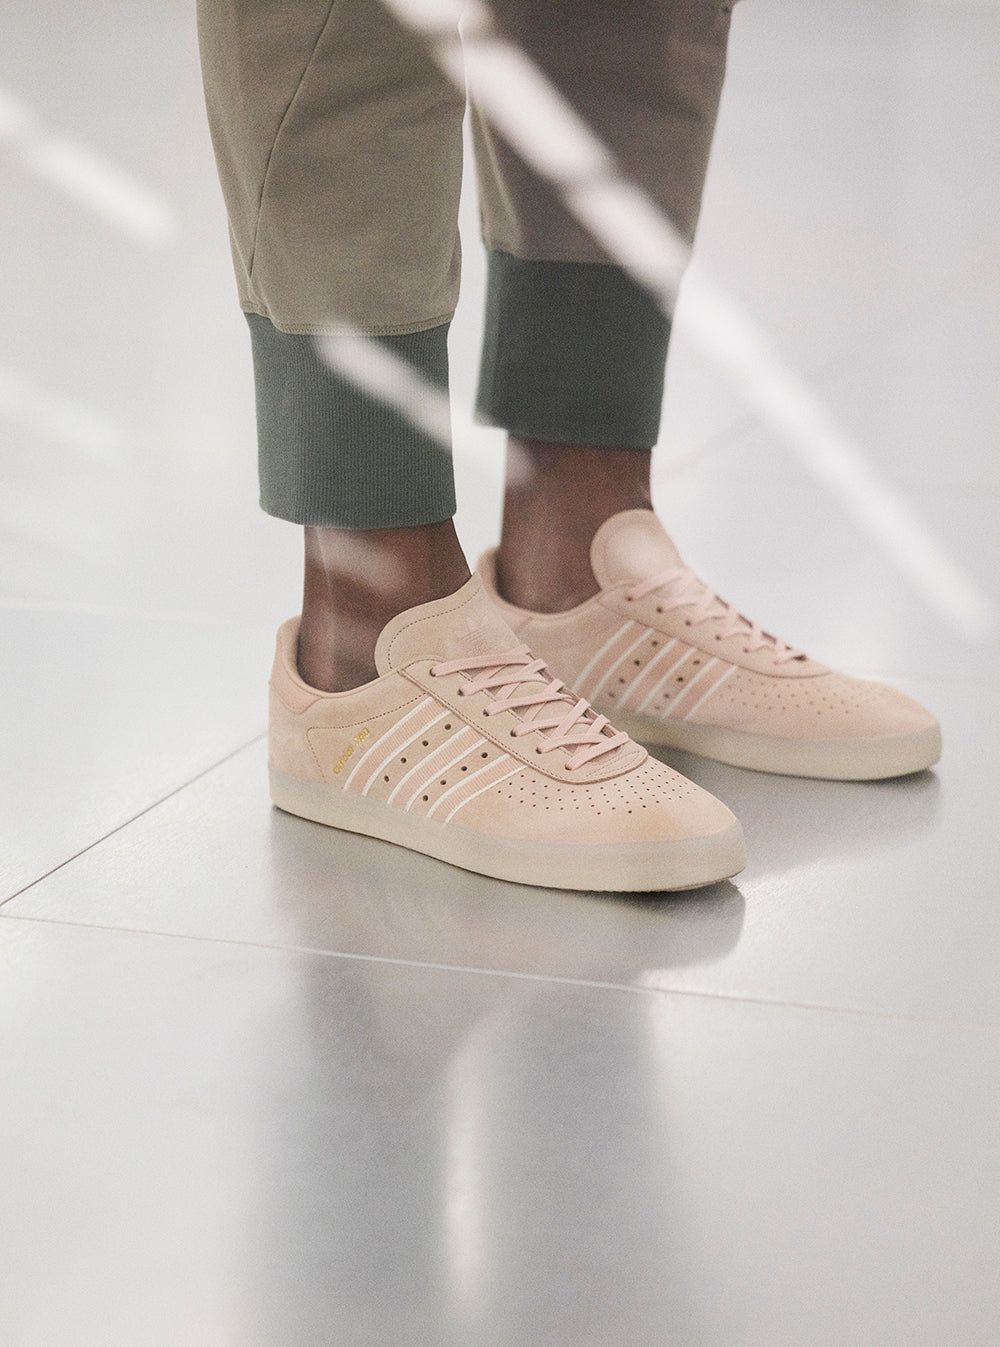 best service 13934 4259f adidas 350 x Oyster Holdings DB1976 ASHPEA CWHITE GOLDMT Price  £99.00.  Launch  Thursday 29th March  ONLINE 00 01BST